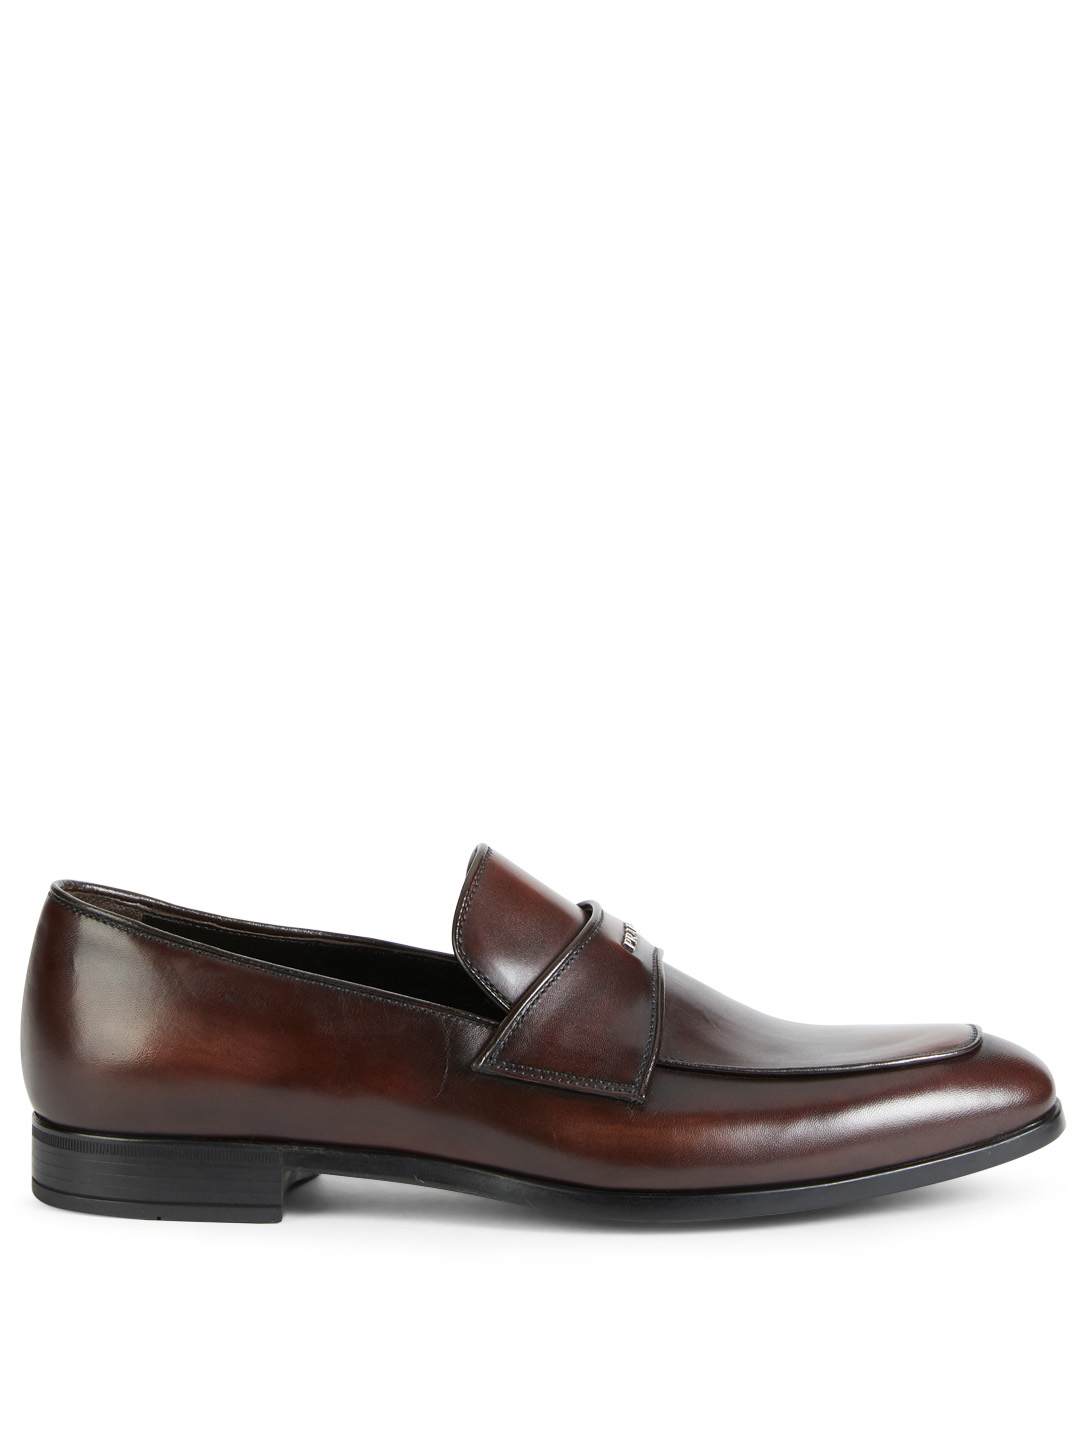 36d40535ce7 spain prada dress shoes black leather apron toe lace up for sale 0275a  c725f  discount code for prada vitello leather loafers mens brown 0ab53  8eaa8